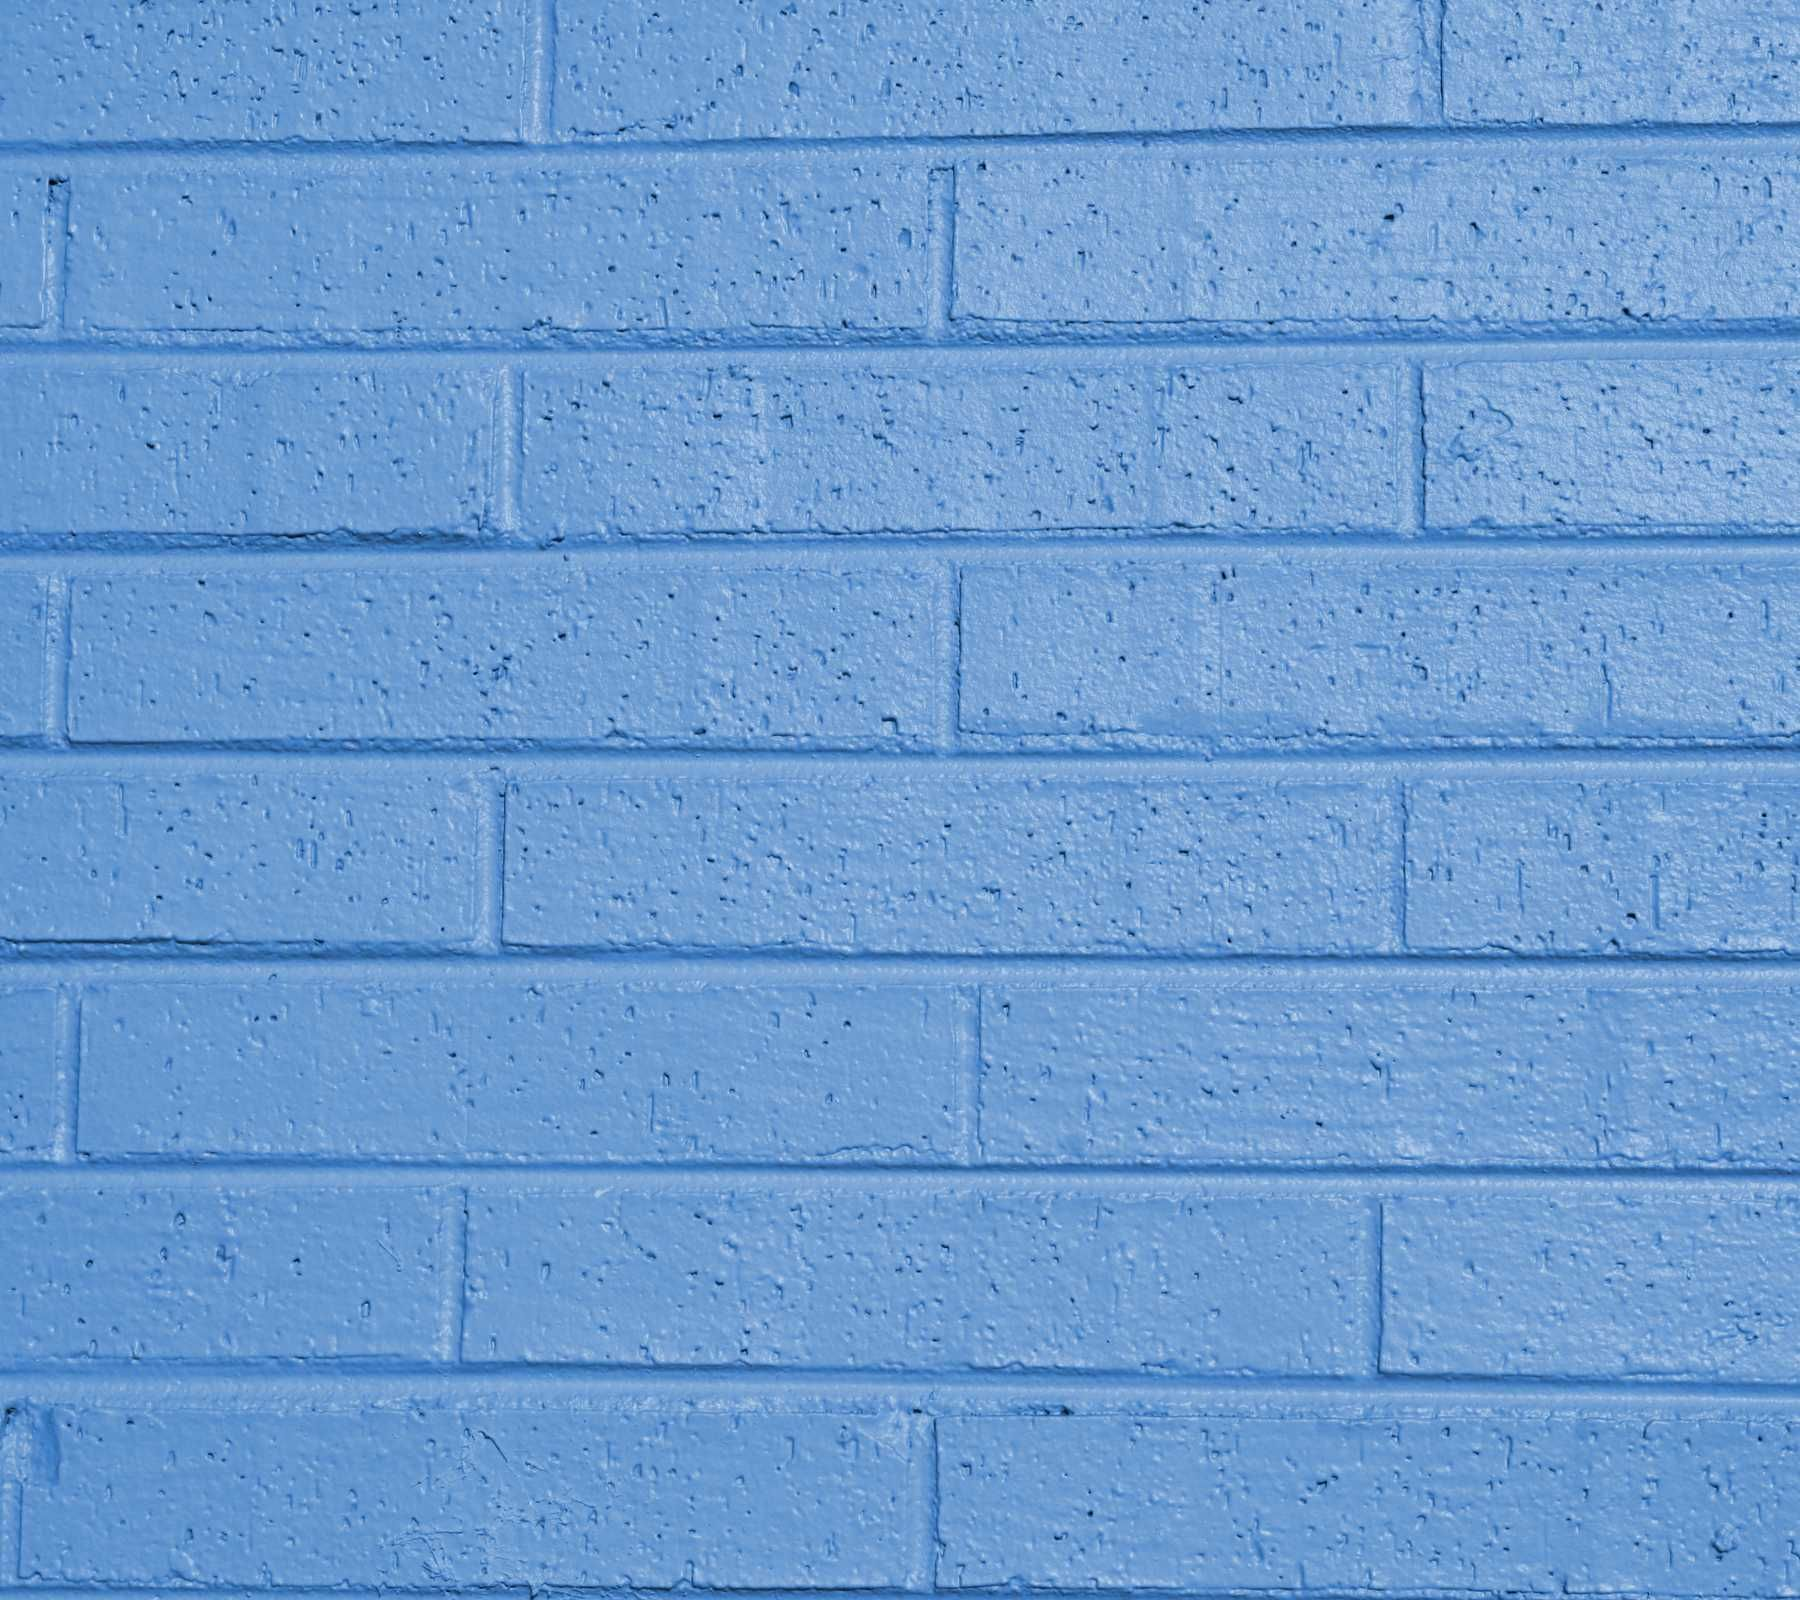 Light Blue Painted Brick Wall Background Image Wallpaper Or